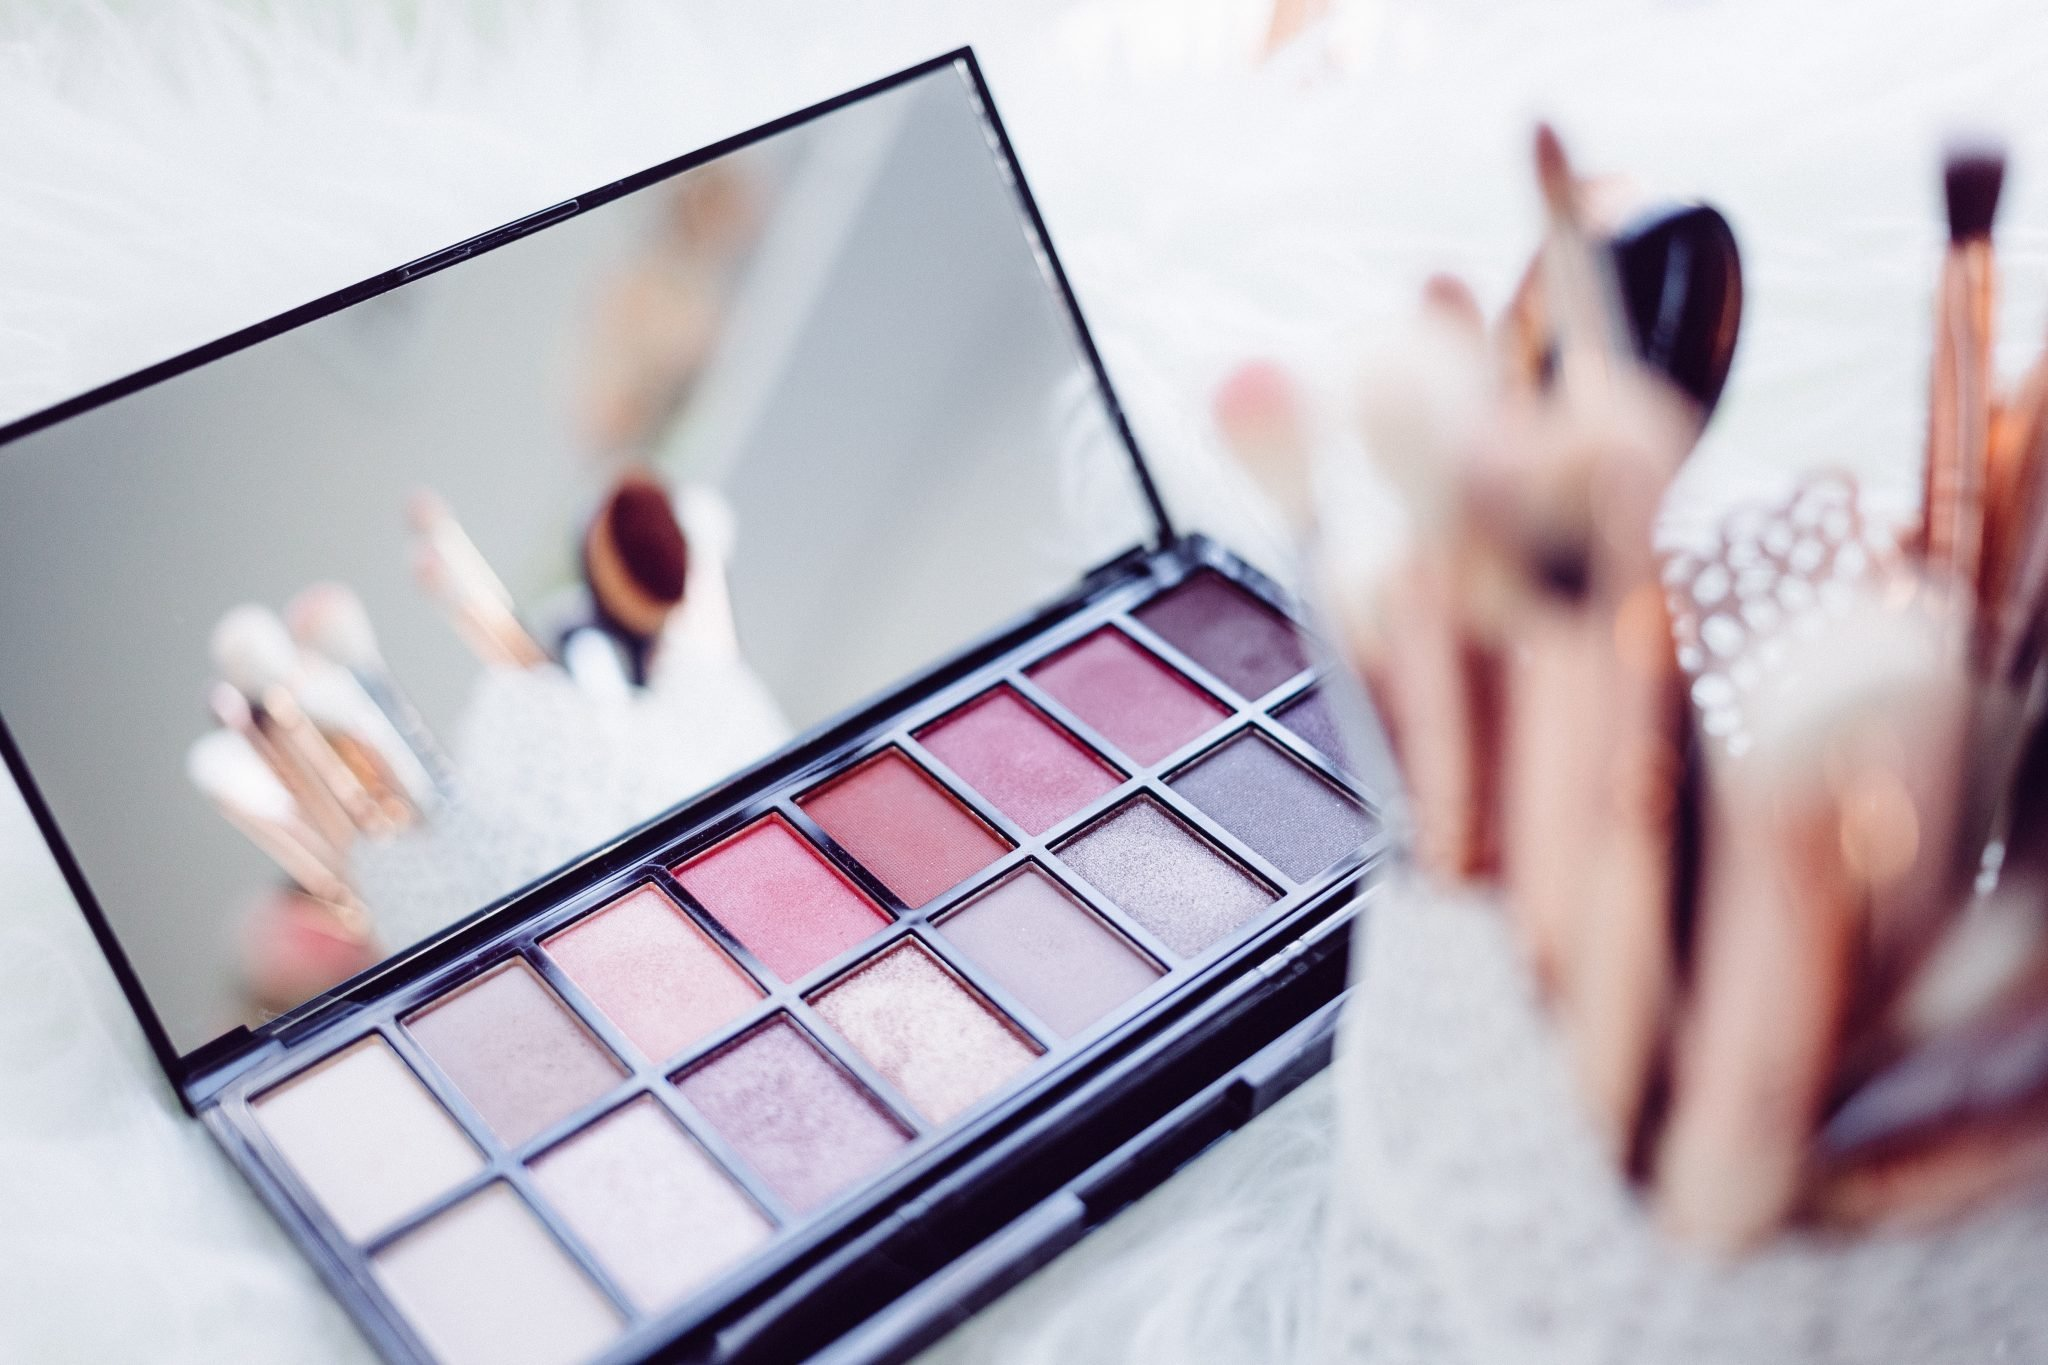 make up - educate yourself on brands